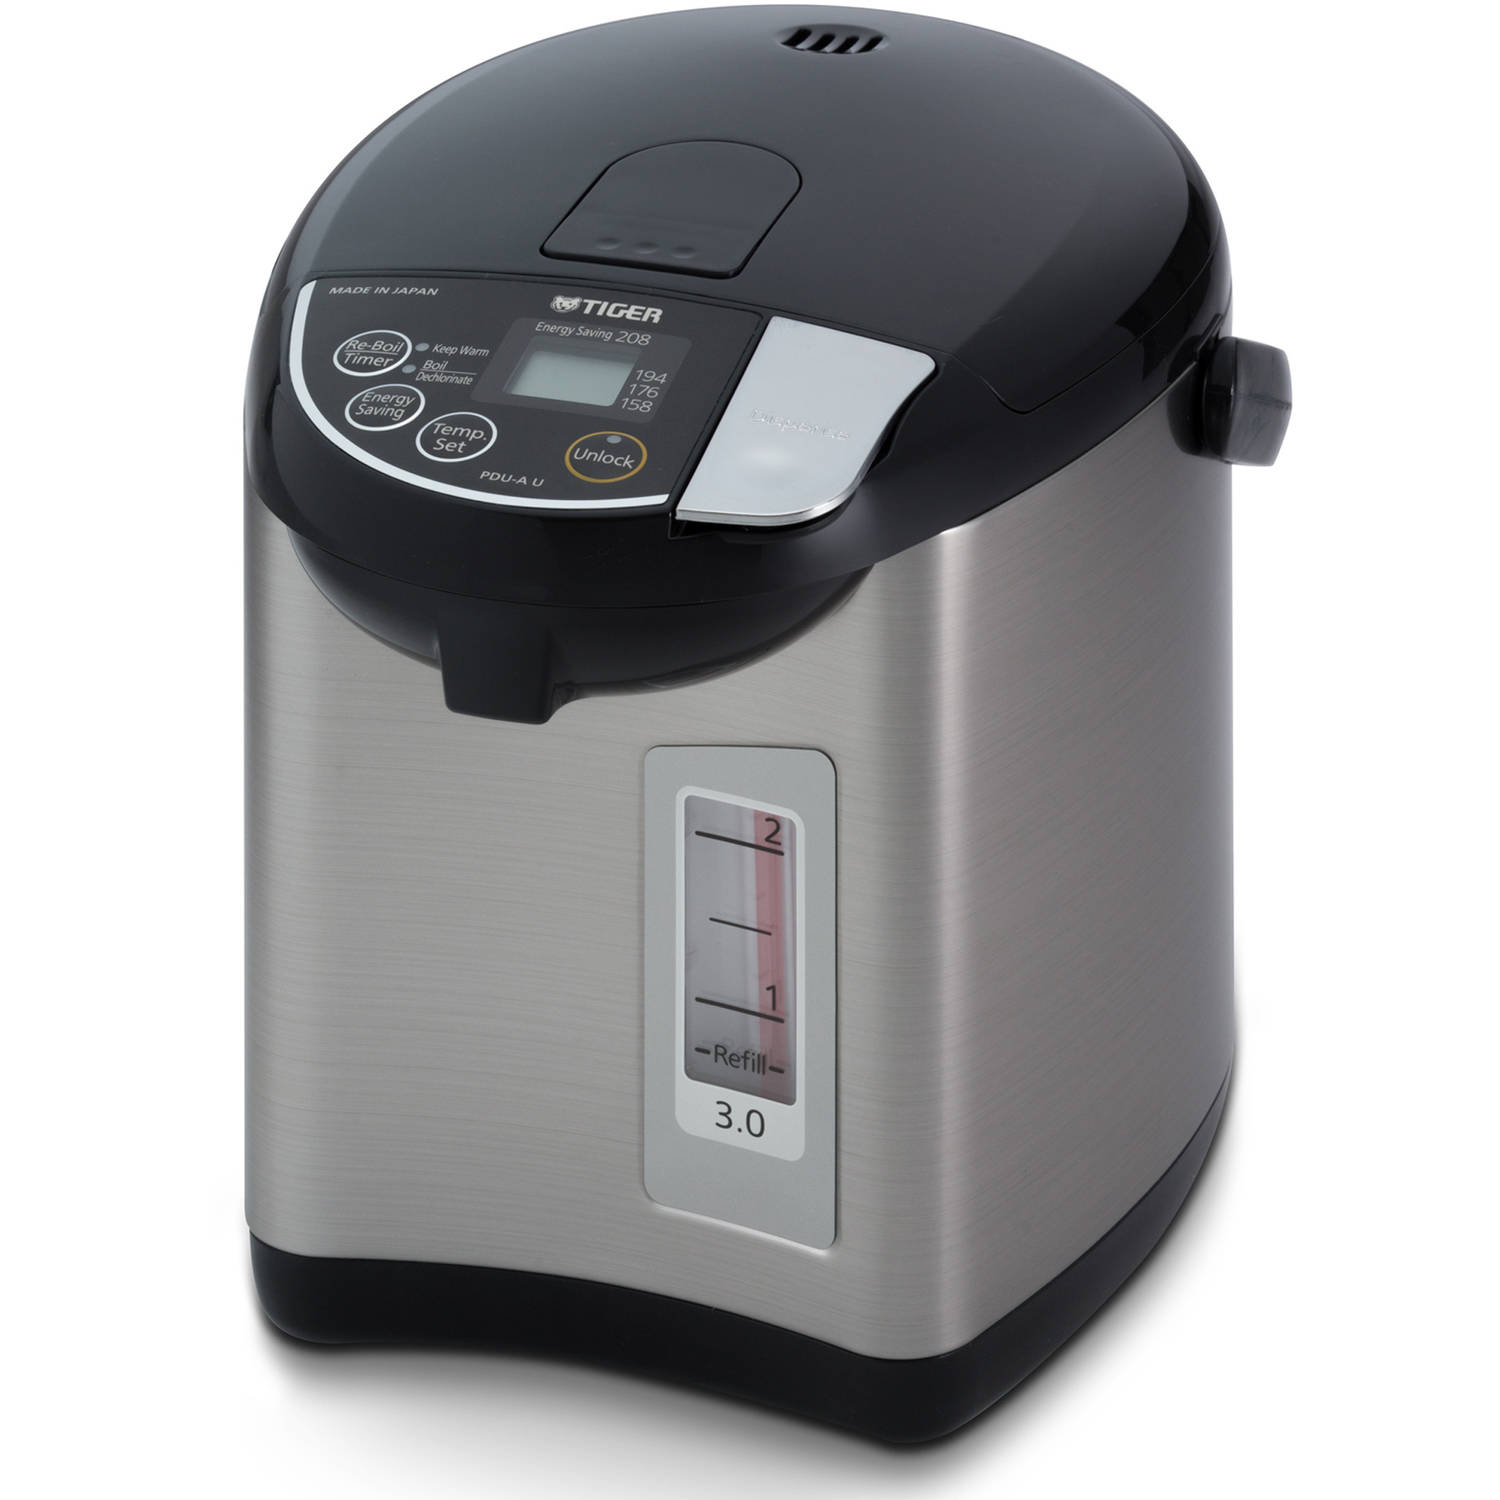 Tiger Electric Water Boiler and Warmer,Stainless Black, 3.0-Liter